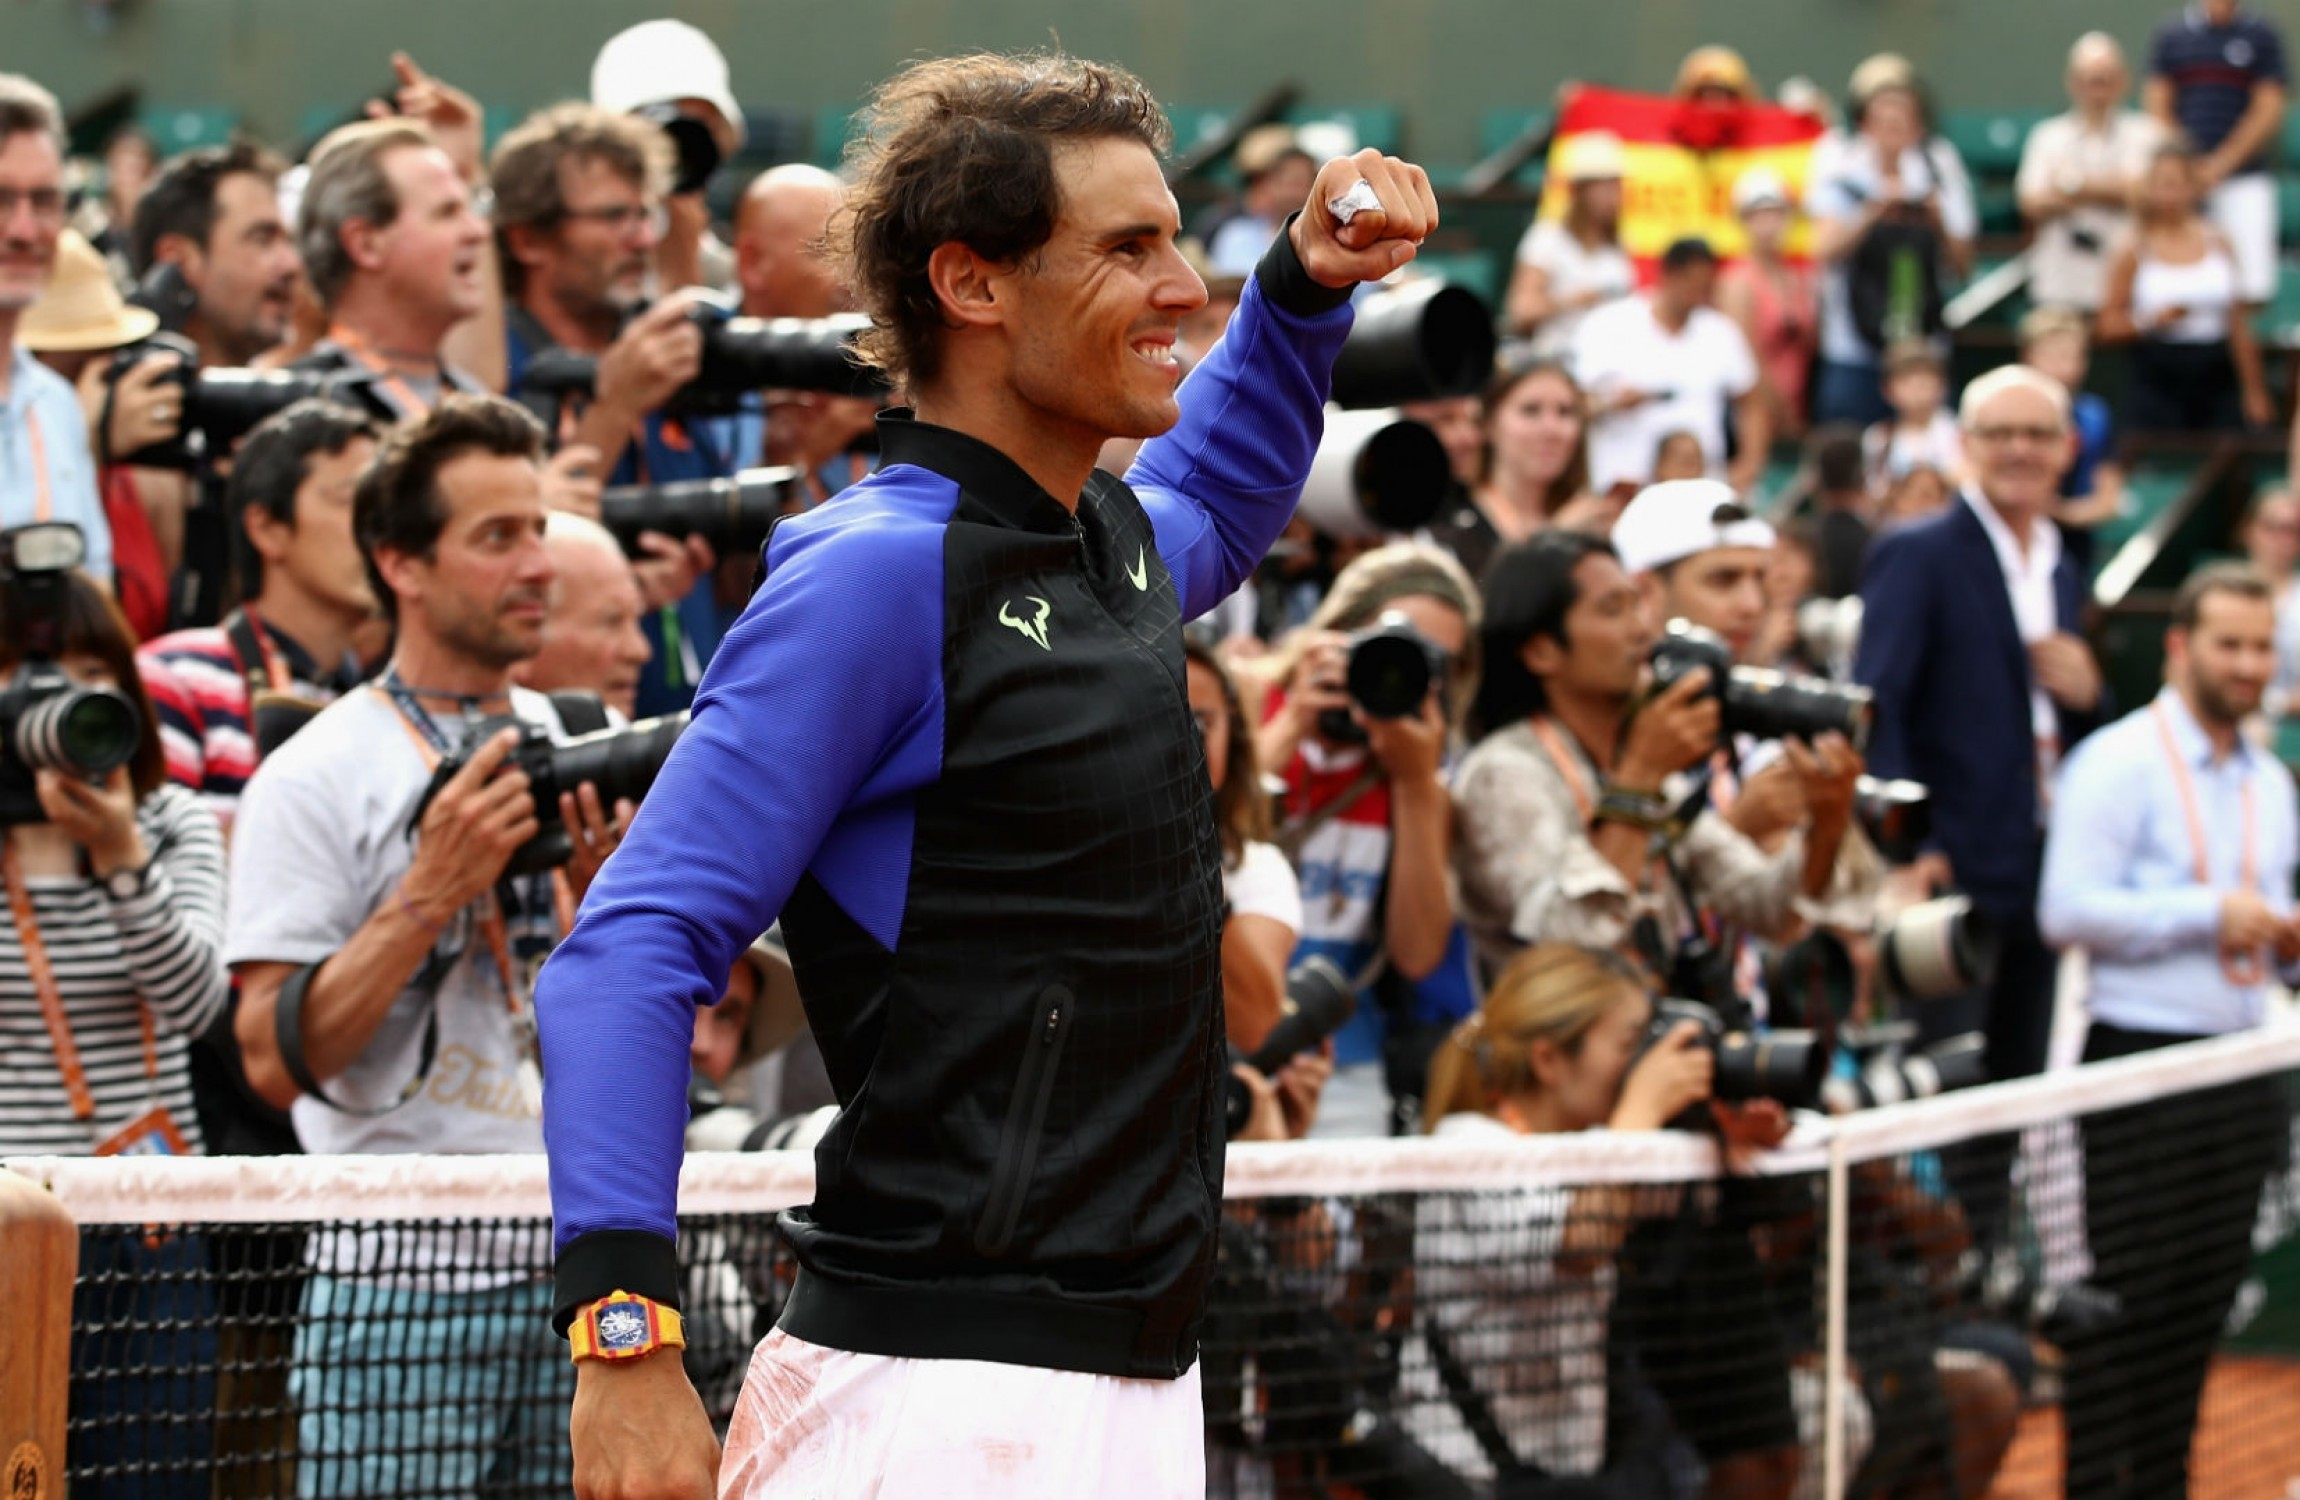 Rafael Nadal beats Wawrinka to win title for a 10th time